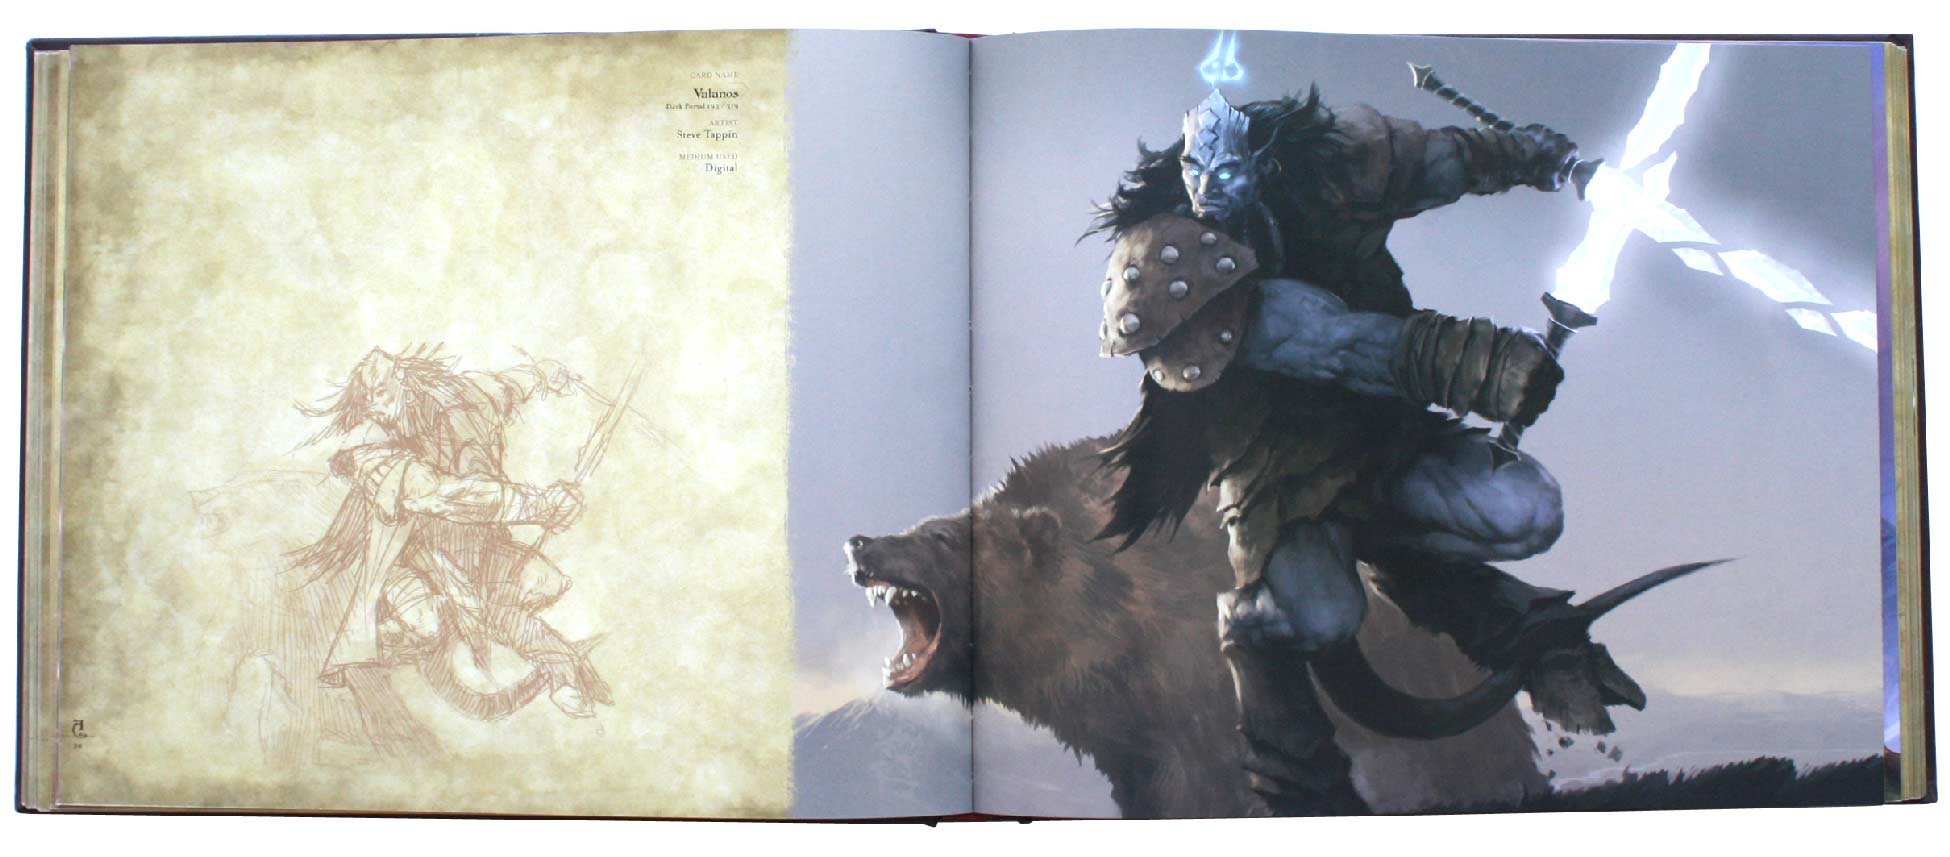 page 94 et 95 de l'art book : The Art of the Trading Card Game (World of Wacraft)